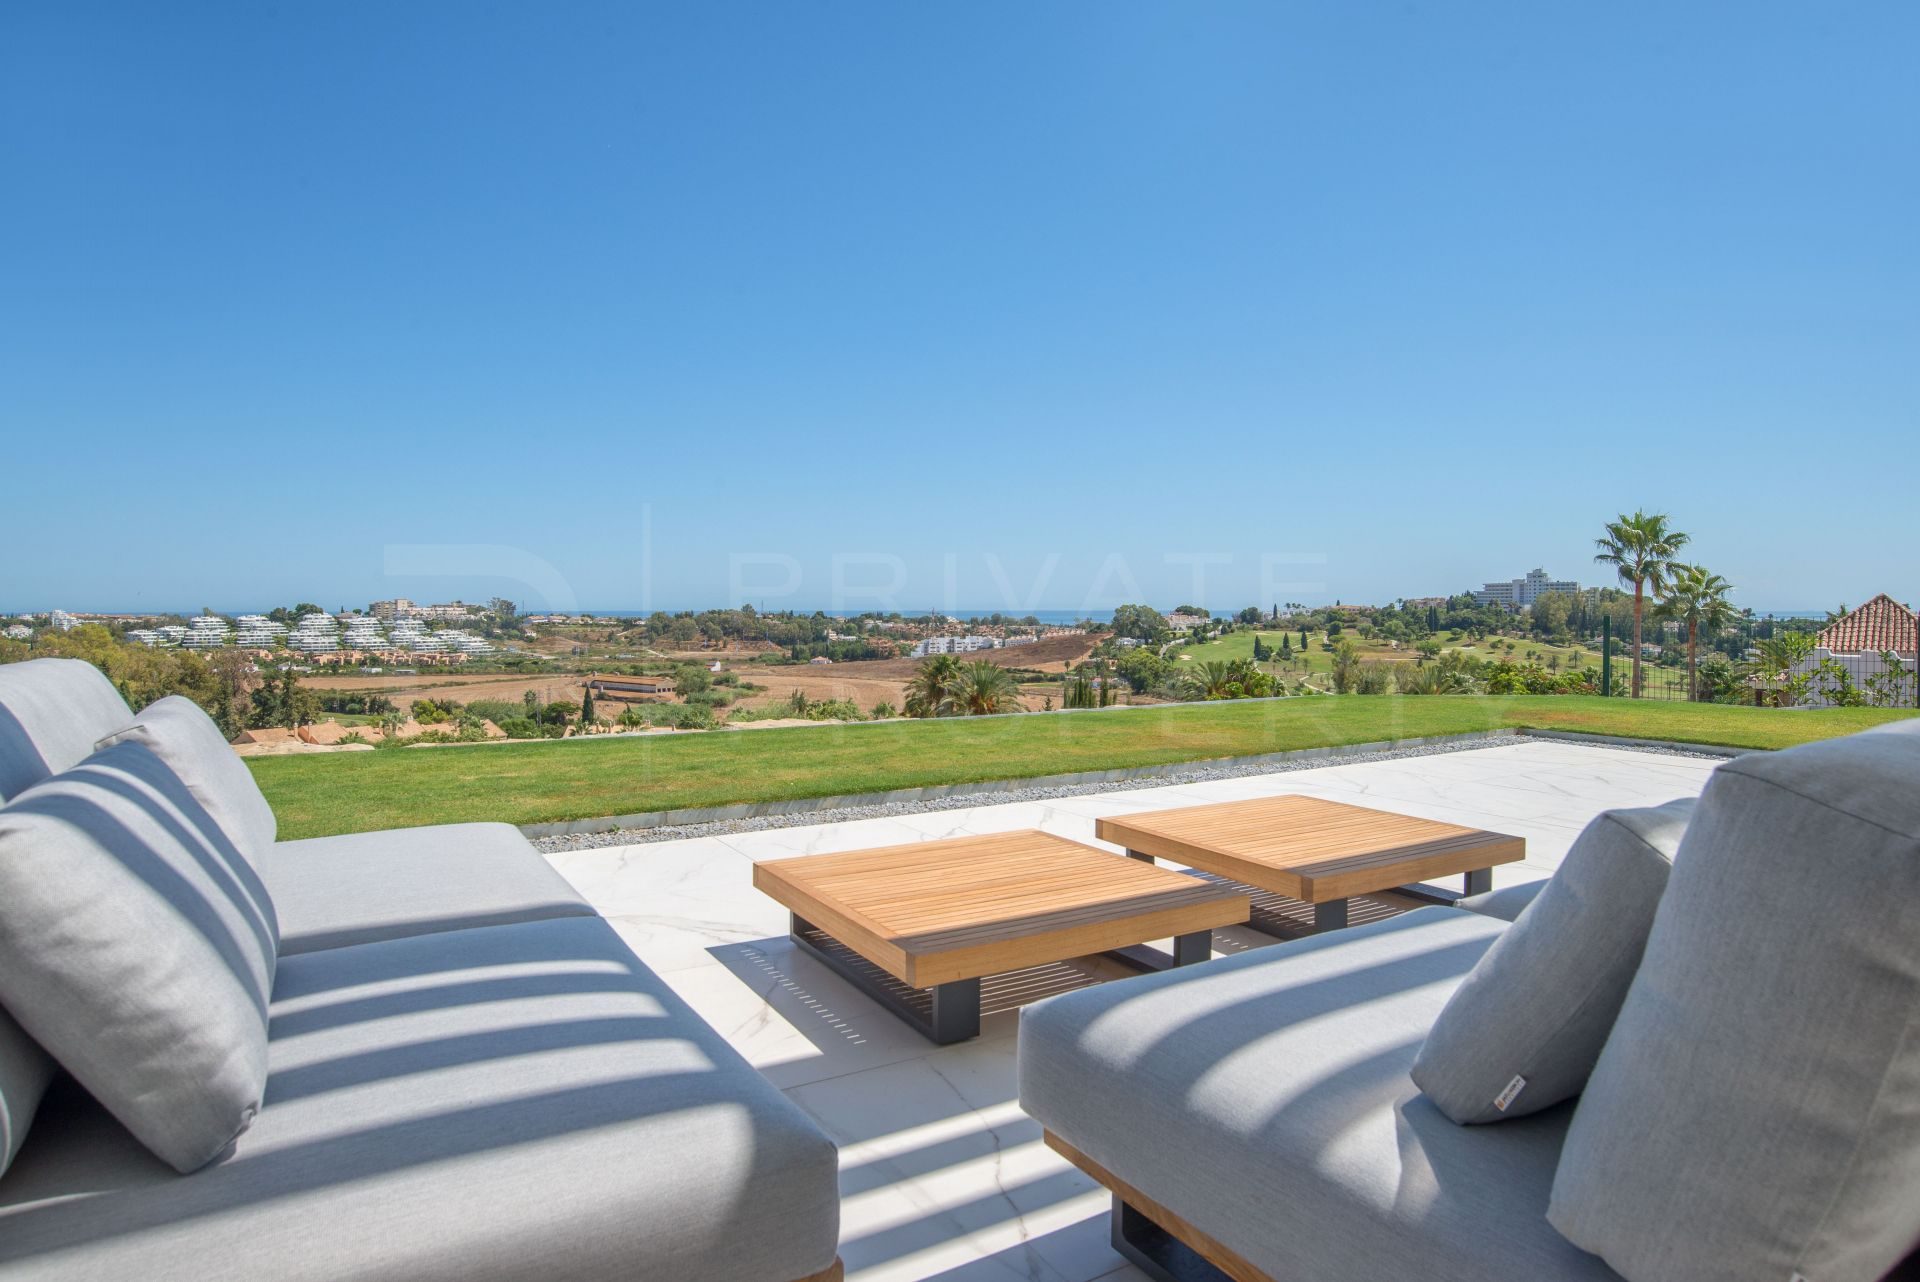 Infinity - Mirador del Paraíso: 24 apartments with wonderful views in a gated community